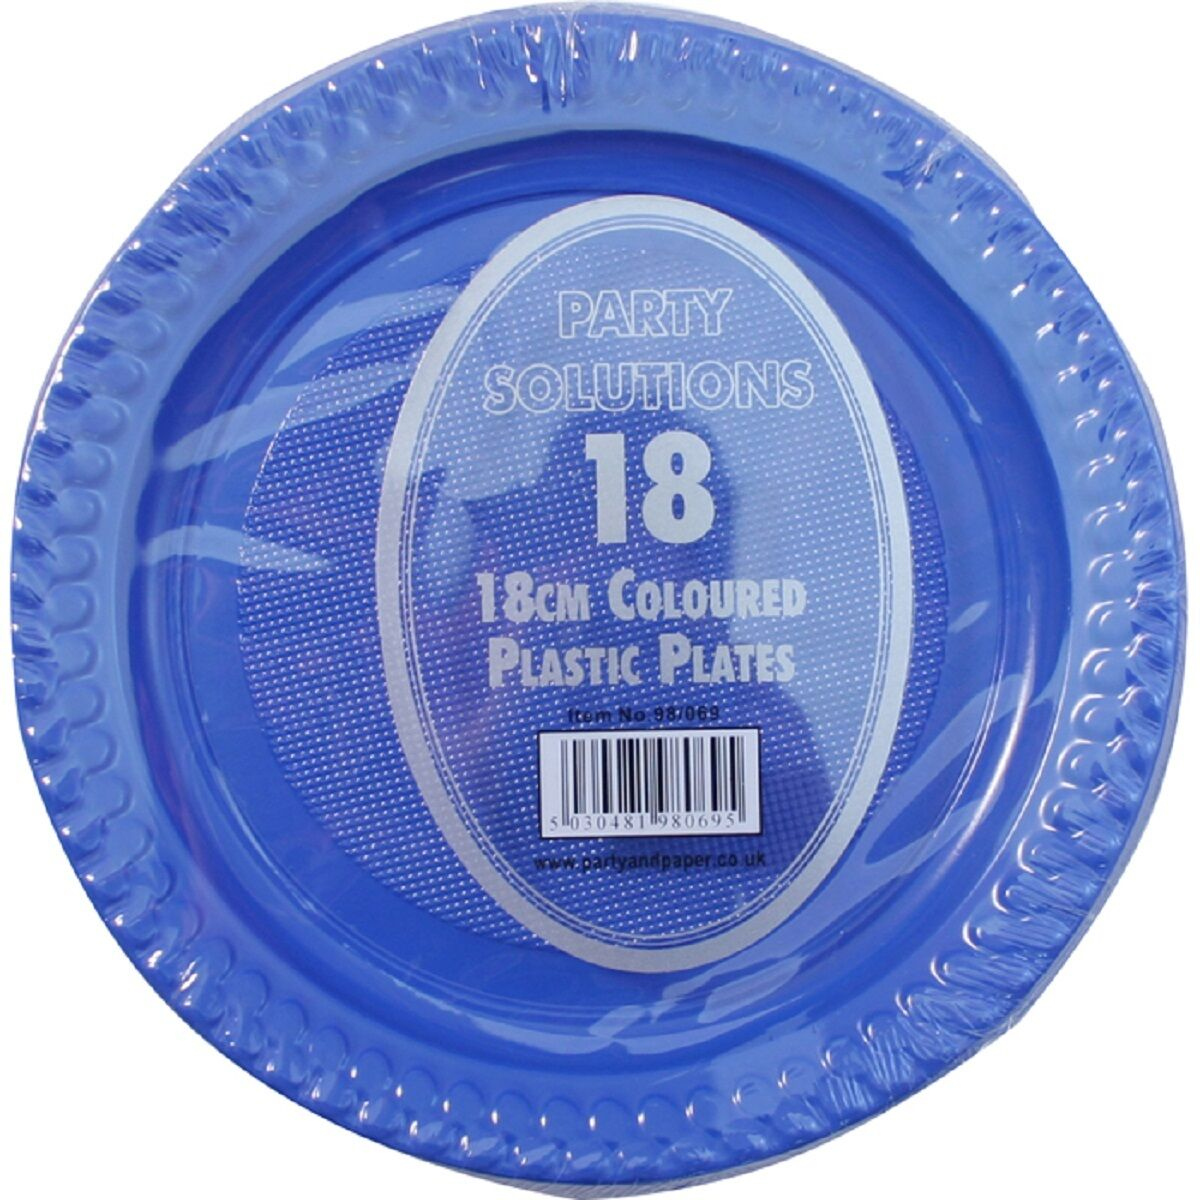 "36 x BLUE PLASTIC PLATES 18cm 7/"" PARTY SUPPLIES TABLEWARE DISPOSABLES ROUND"